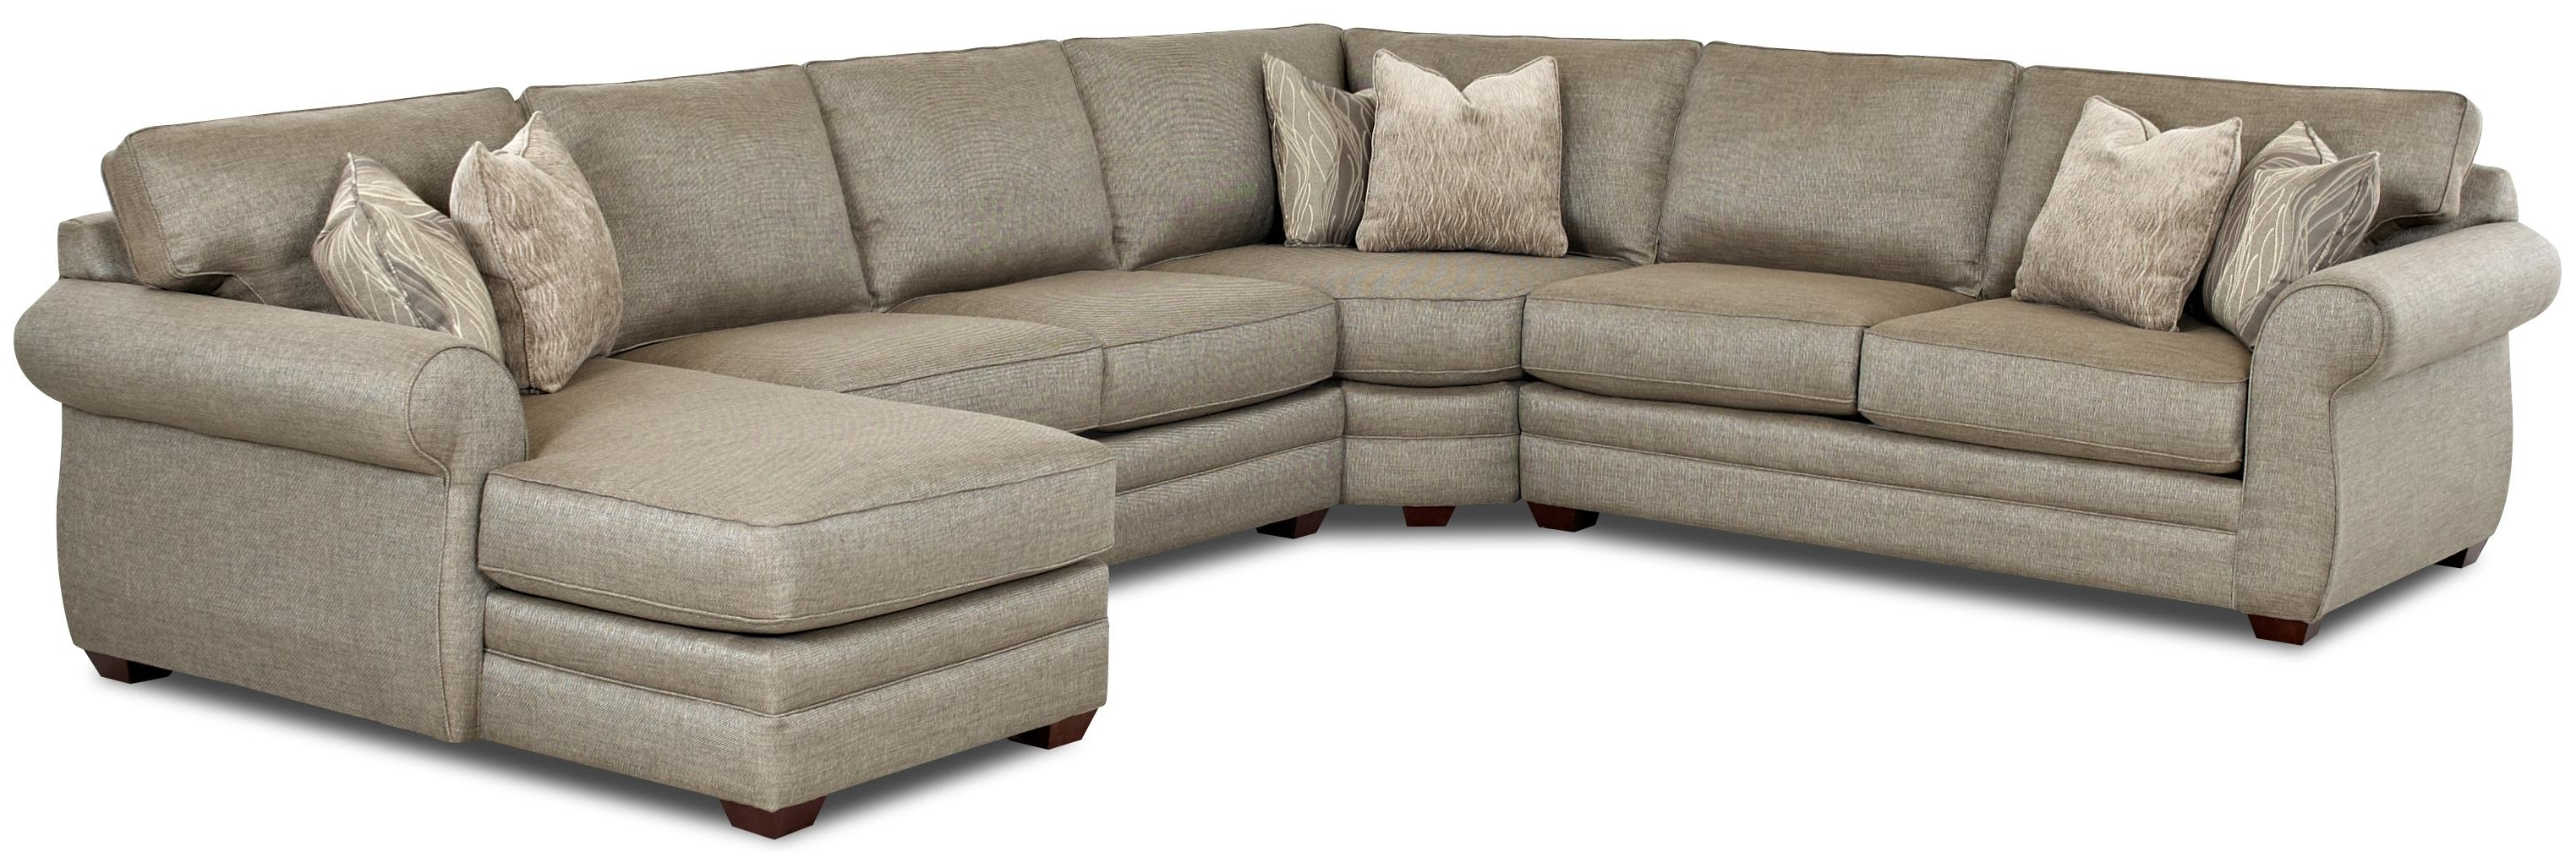 Most Recent Klaussner Clanton Transitional Sectional Sofa With Right Chaise In Pittsburgh Sectional Sofas (View 6 of 20)